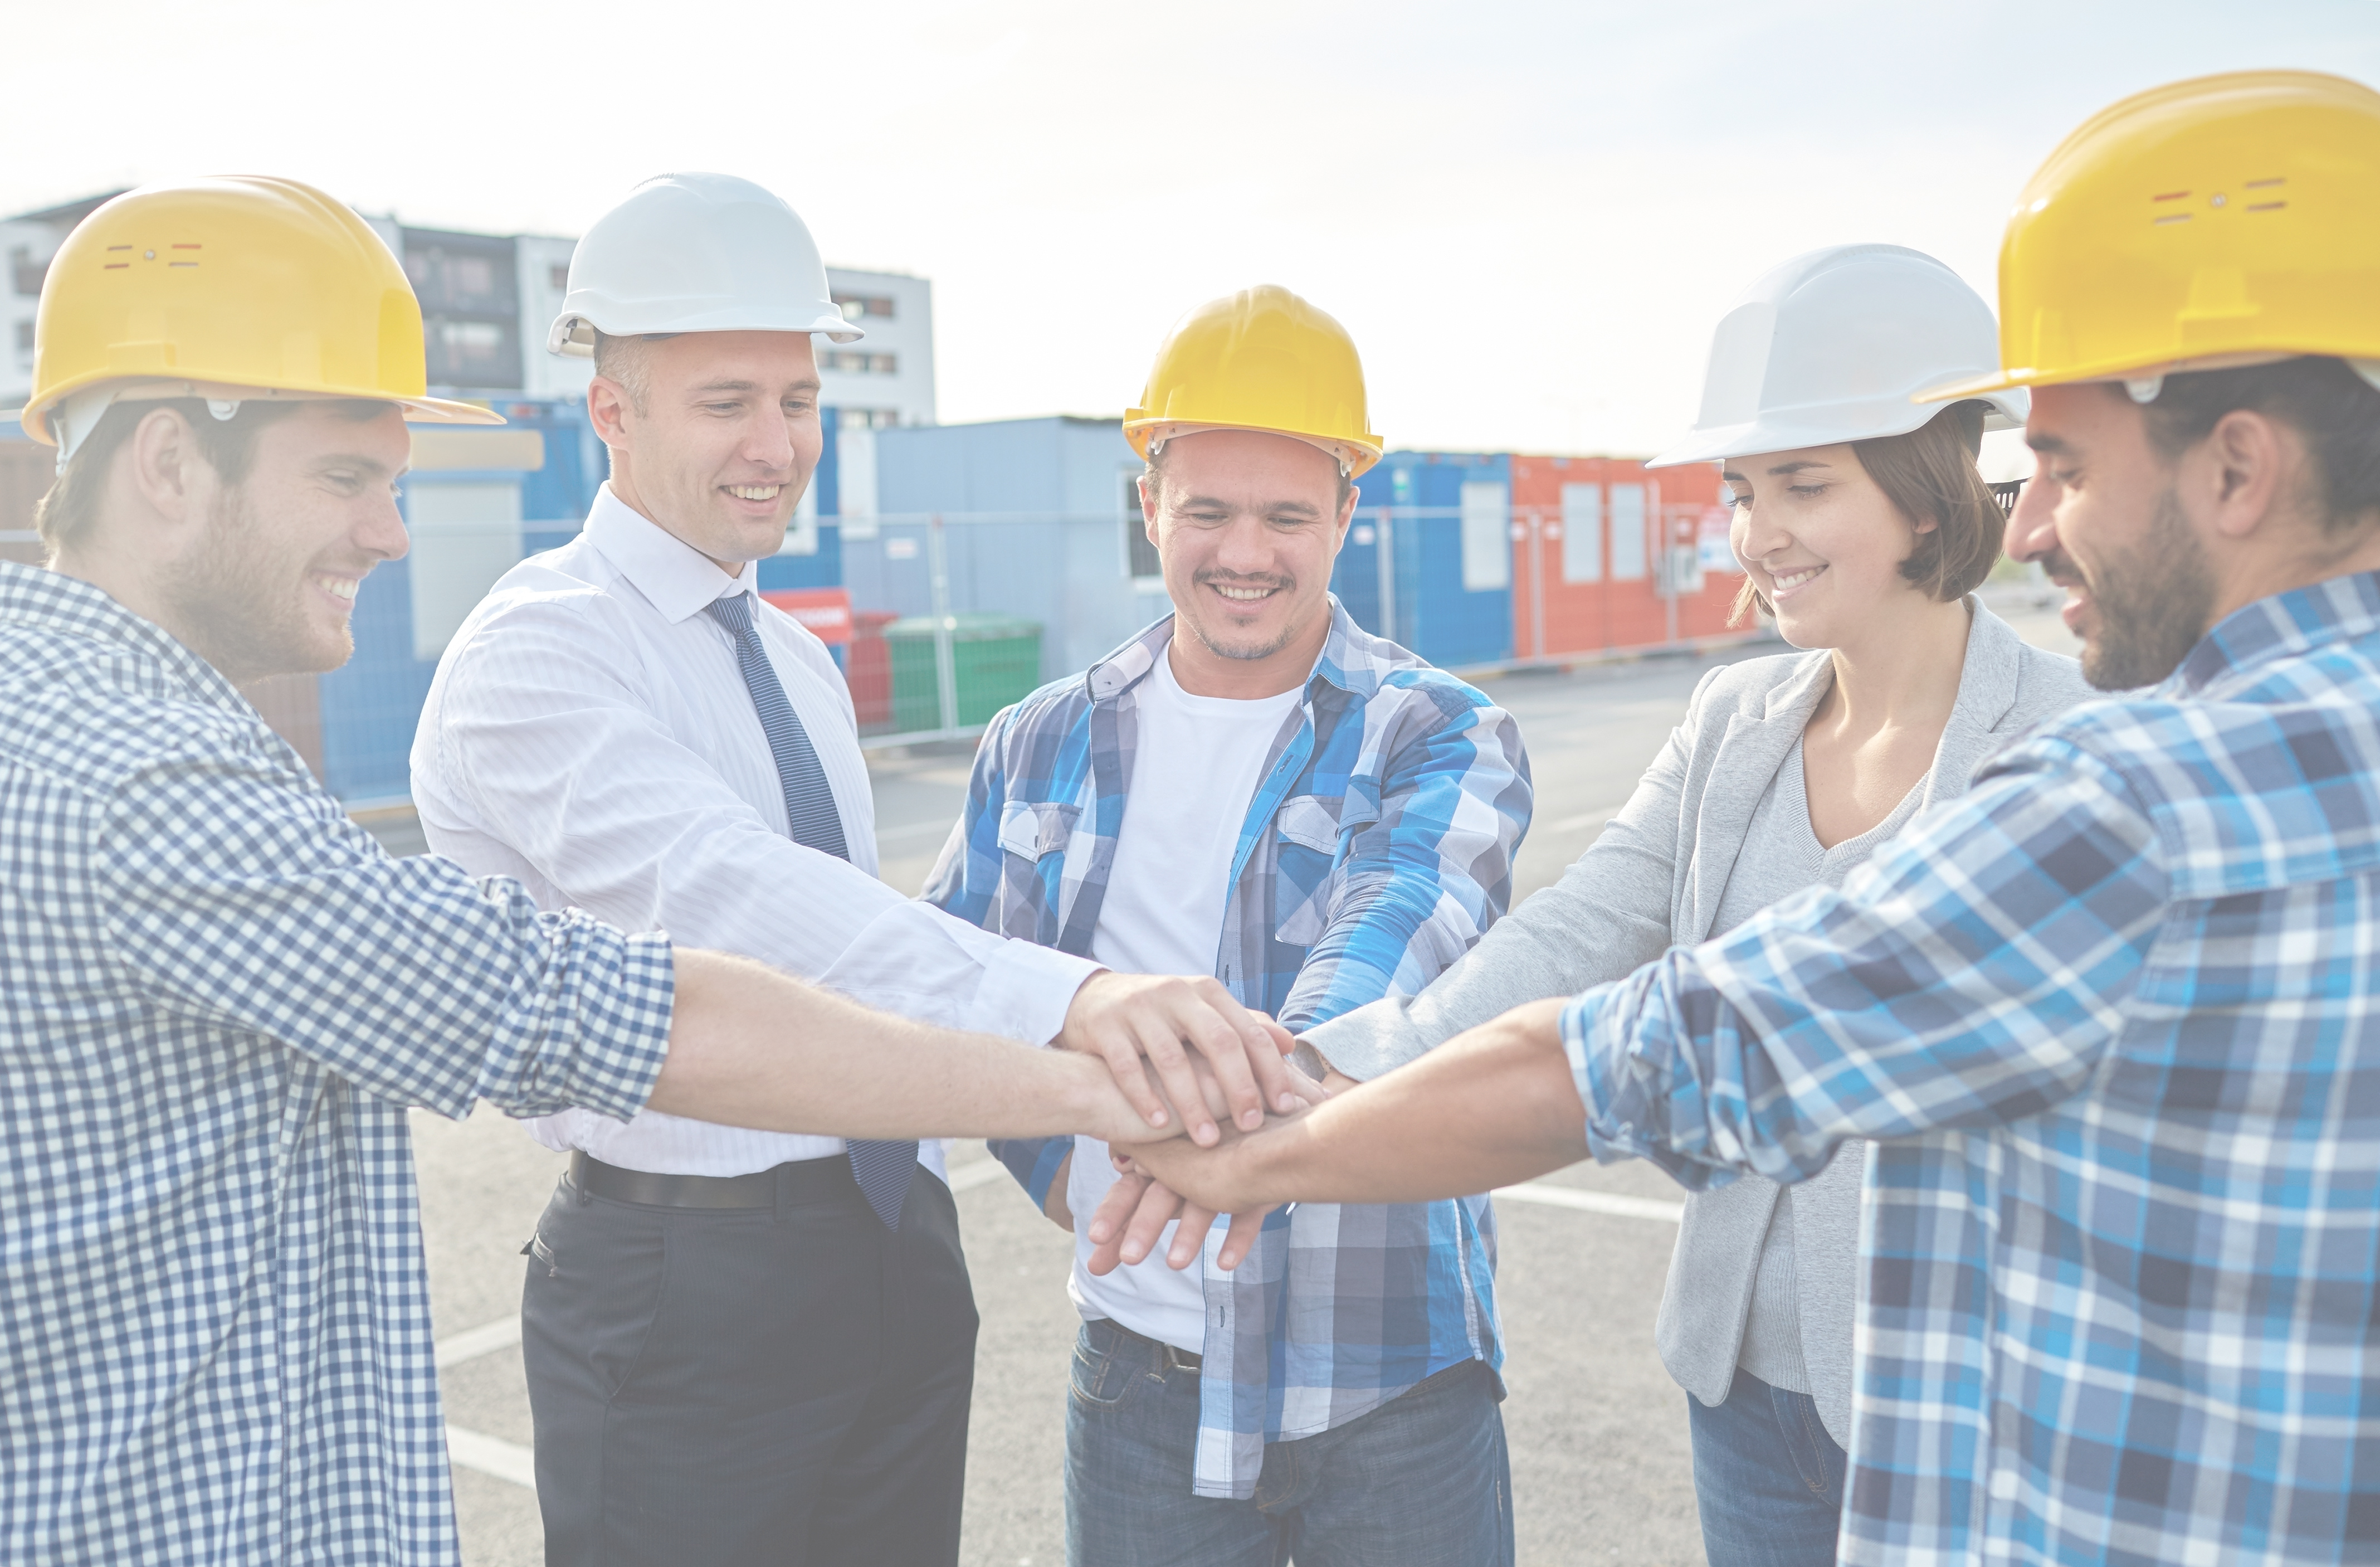 positive safety culture business, building, partnership, gesture and people concept - smiling builders and architects in hardhats with hands on top outdoors